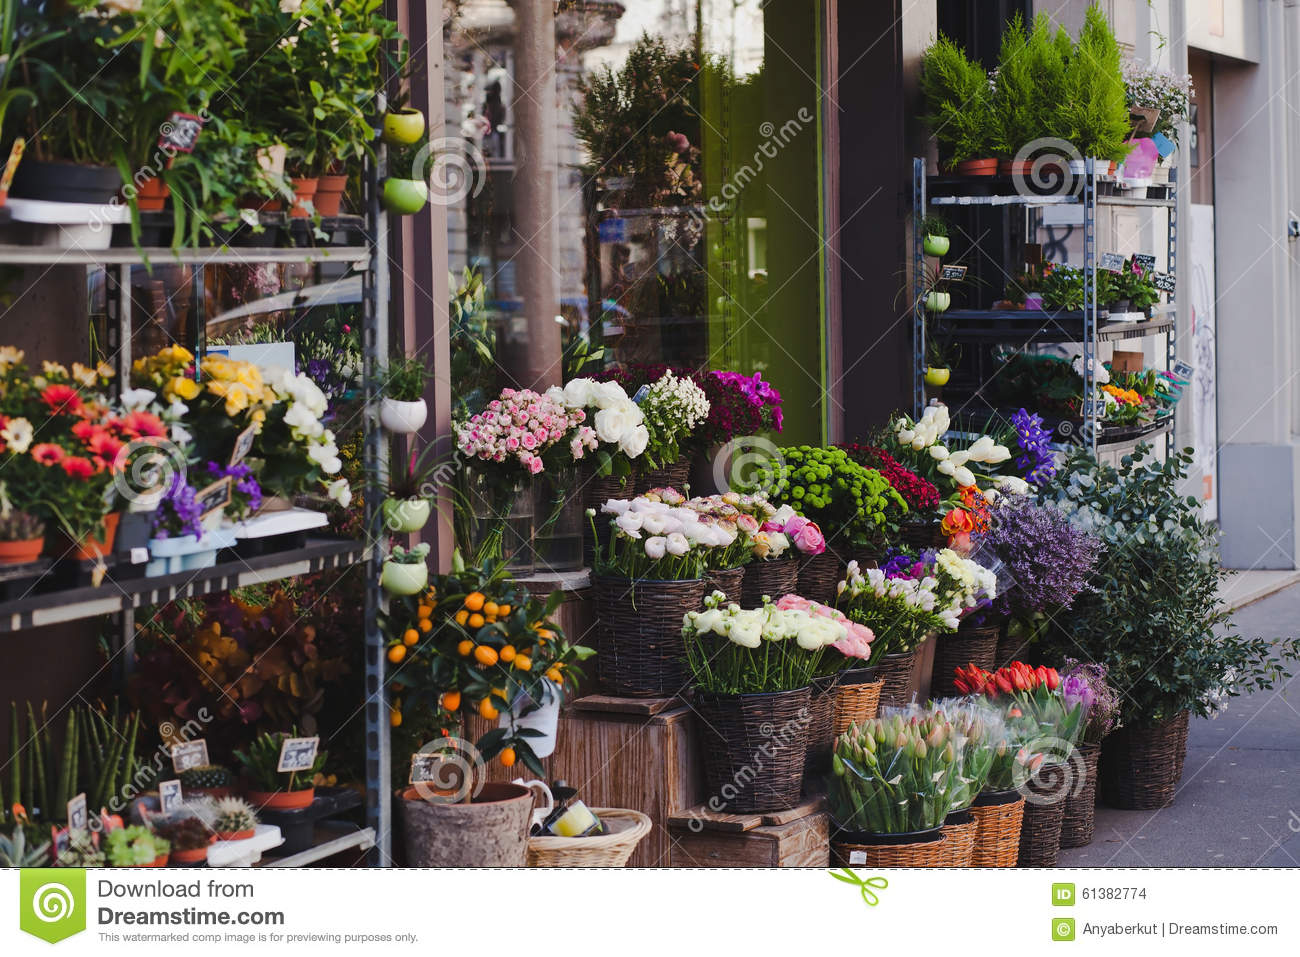 Flower shop in europe stock photo image of outdoor france 61382774 flower shop in europe izmirmasajfo